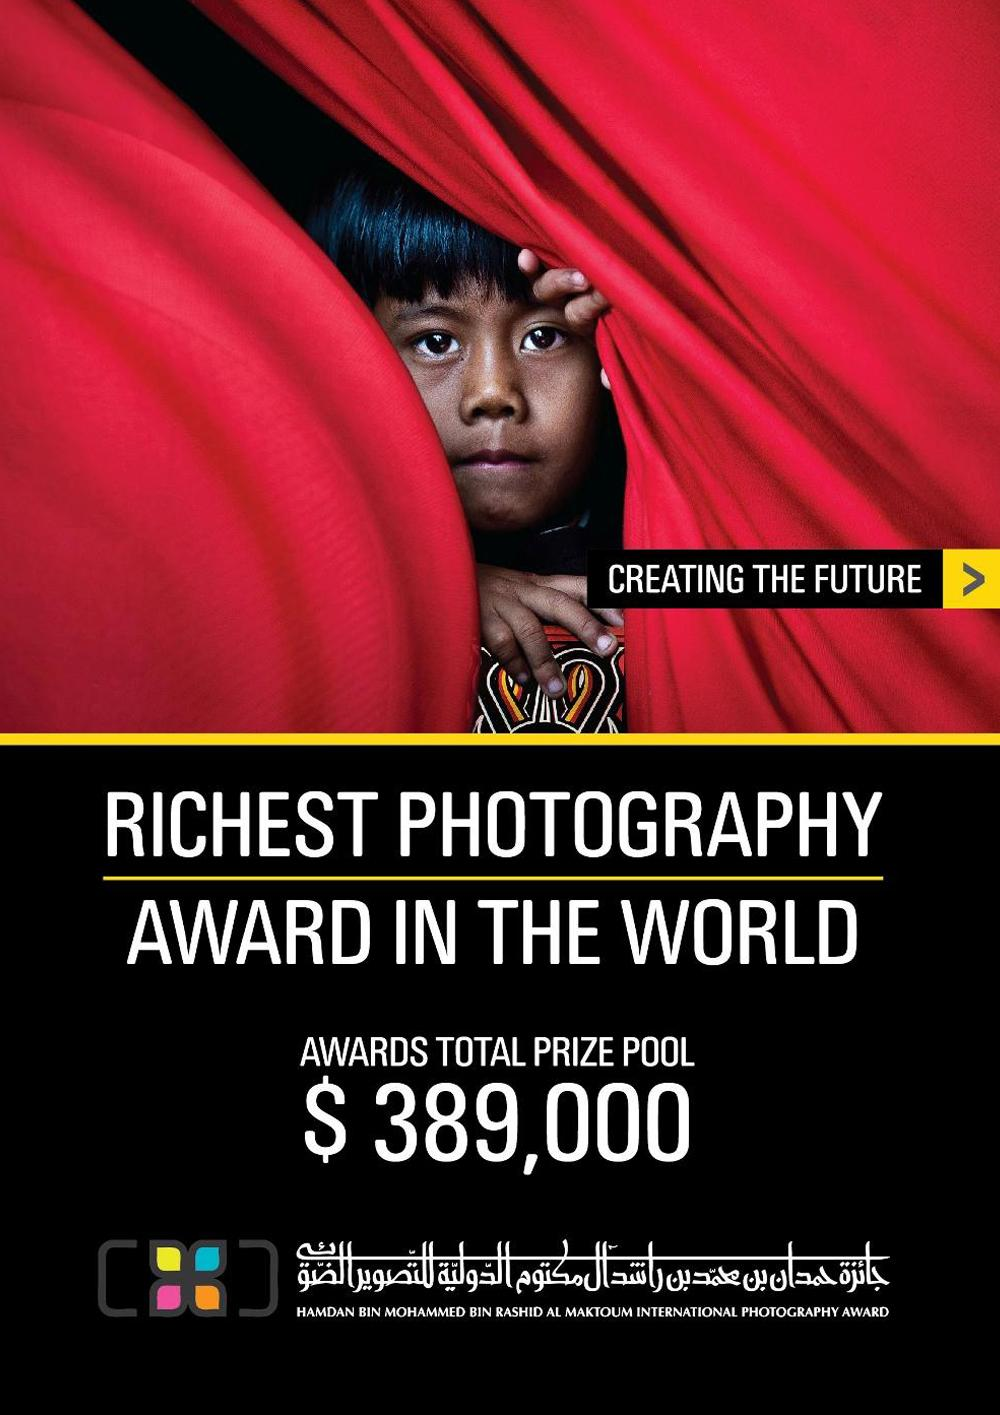 IIP ATTRACTS INTERNATIONAL ATTENTION, ENTERS INTO AN EXCLUSIVE COLLABORATION WITH HIPA, WORLD'S RICHEST PHOTOGRAPHY AWARD